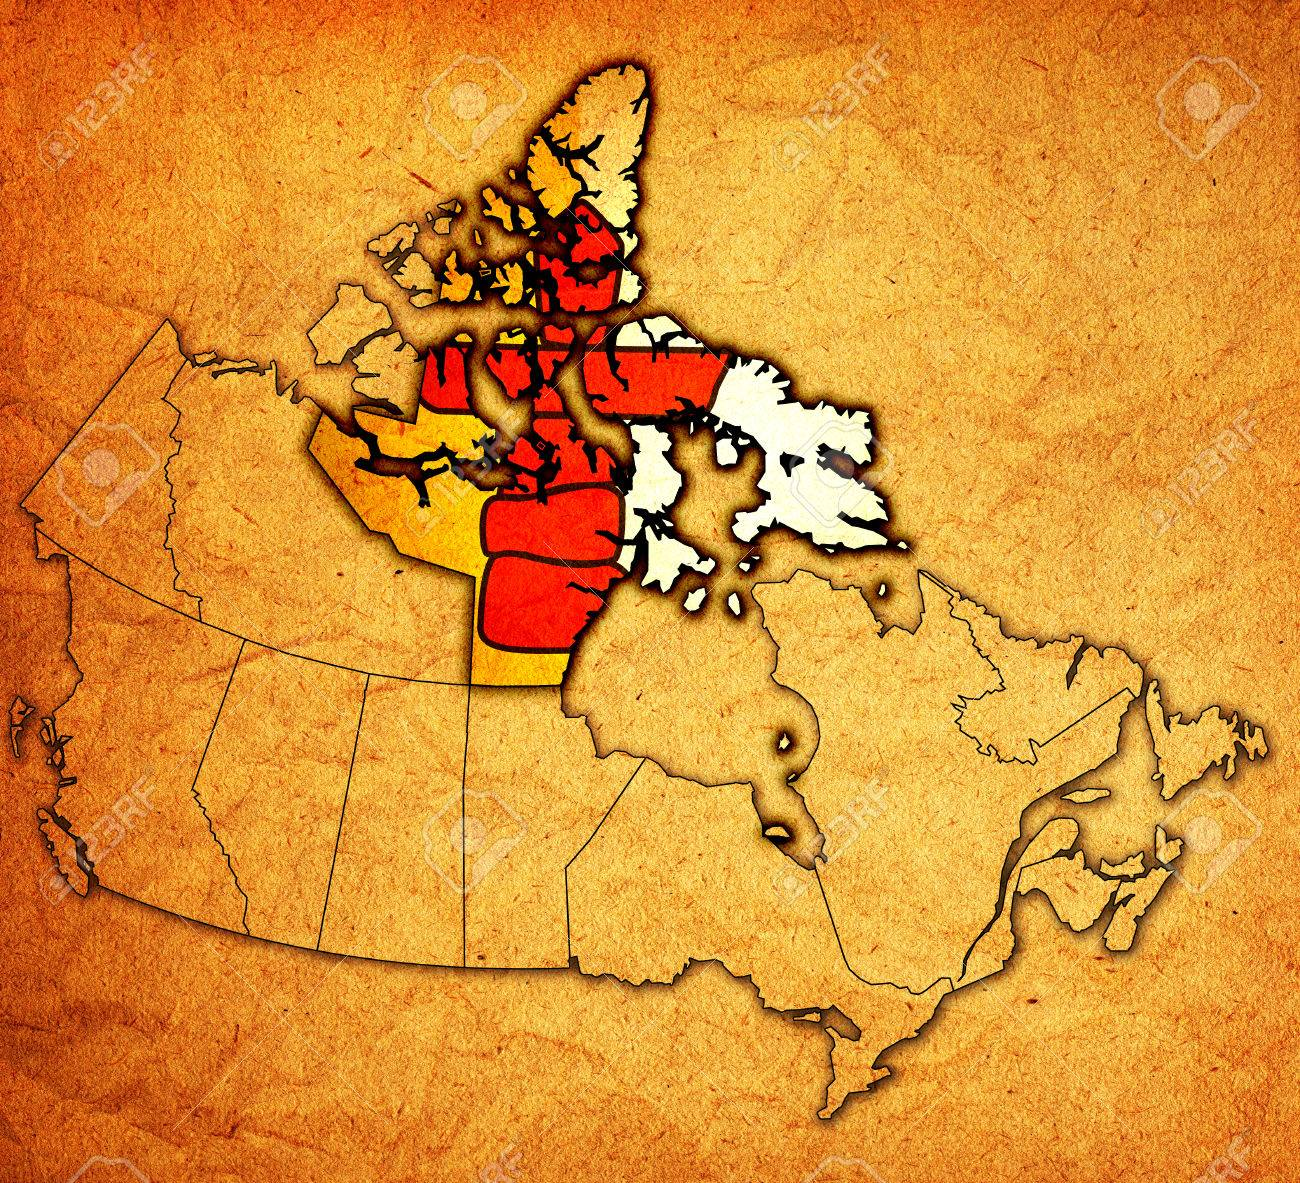 Map Of Canada Nunavut.Nunavut On Administration Map Of Canada With Flags